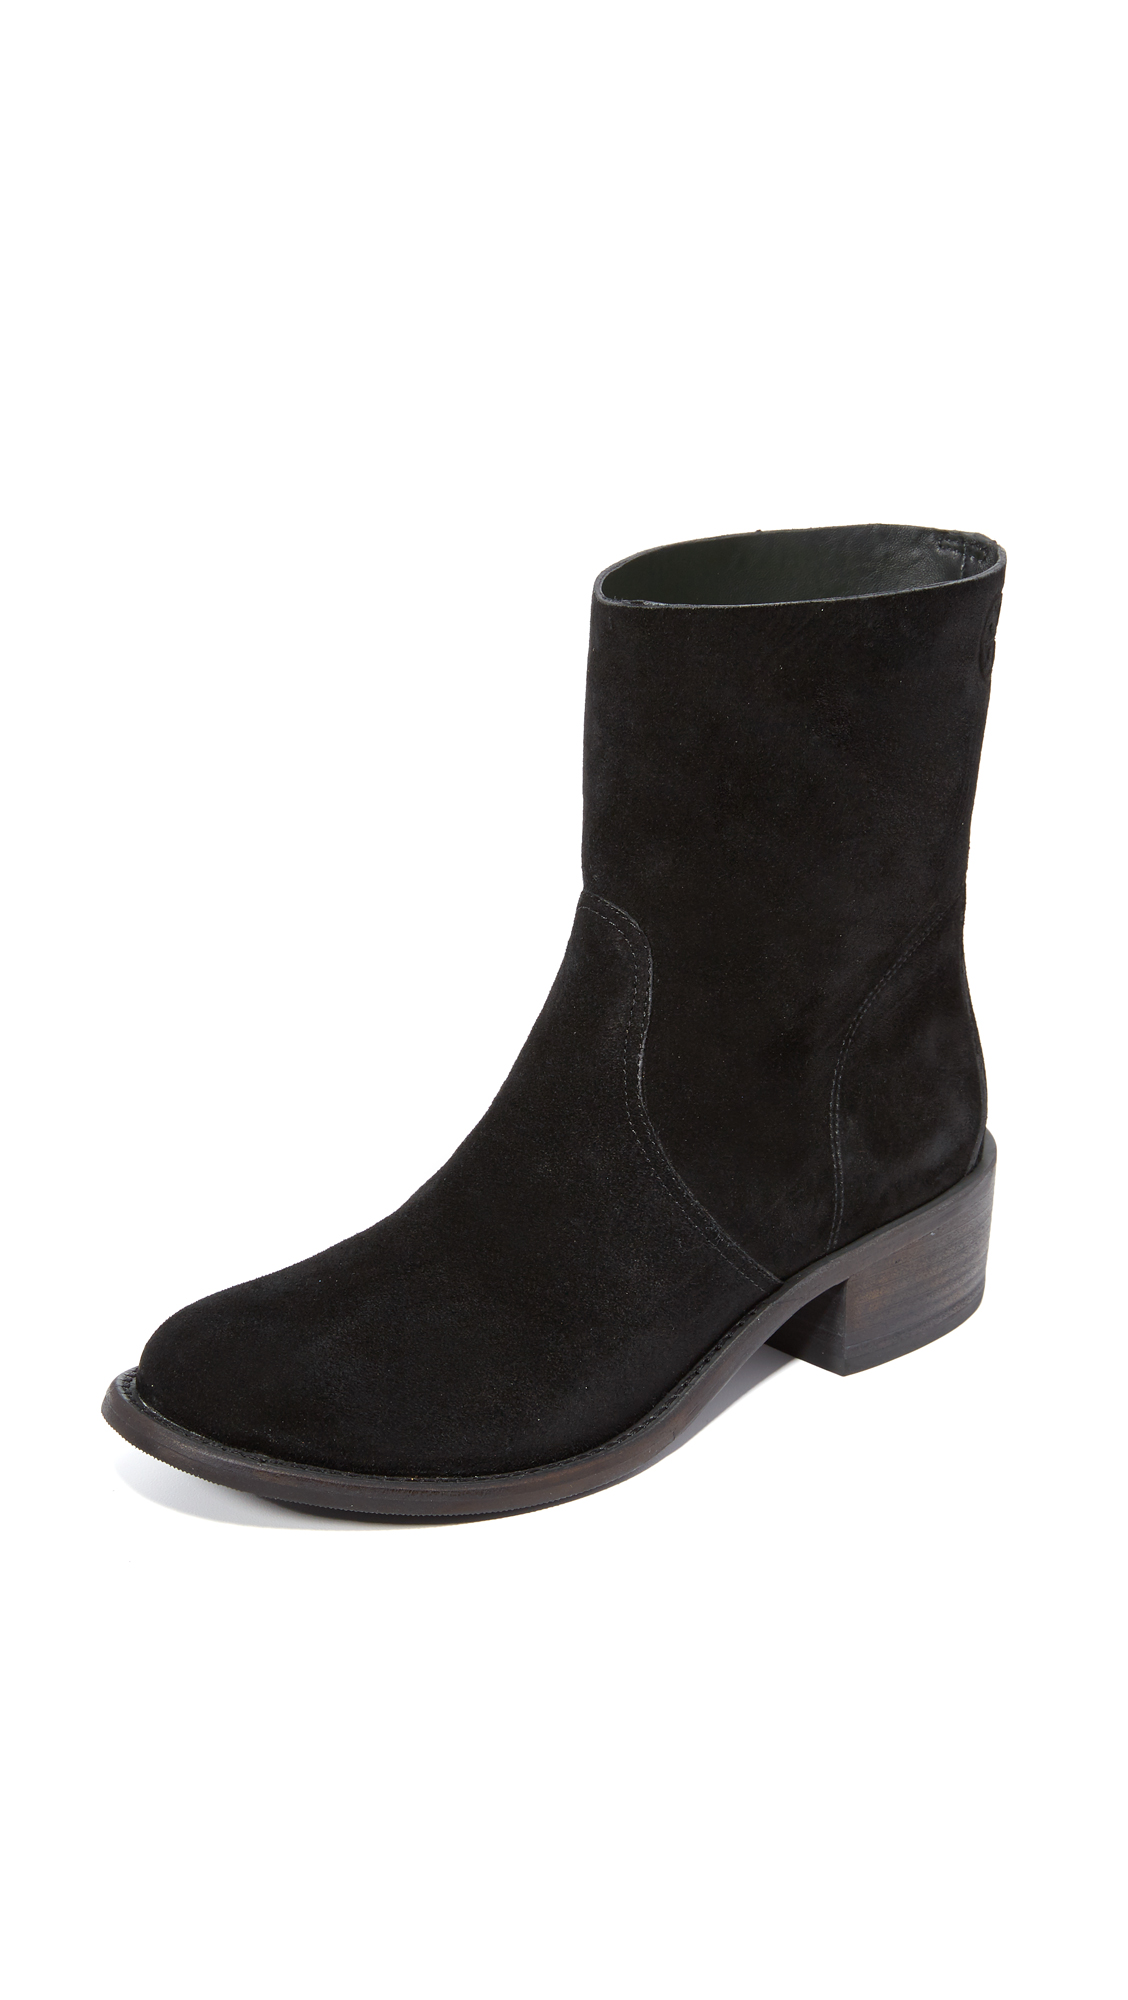 Tory Burch Siena Boots - Black